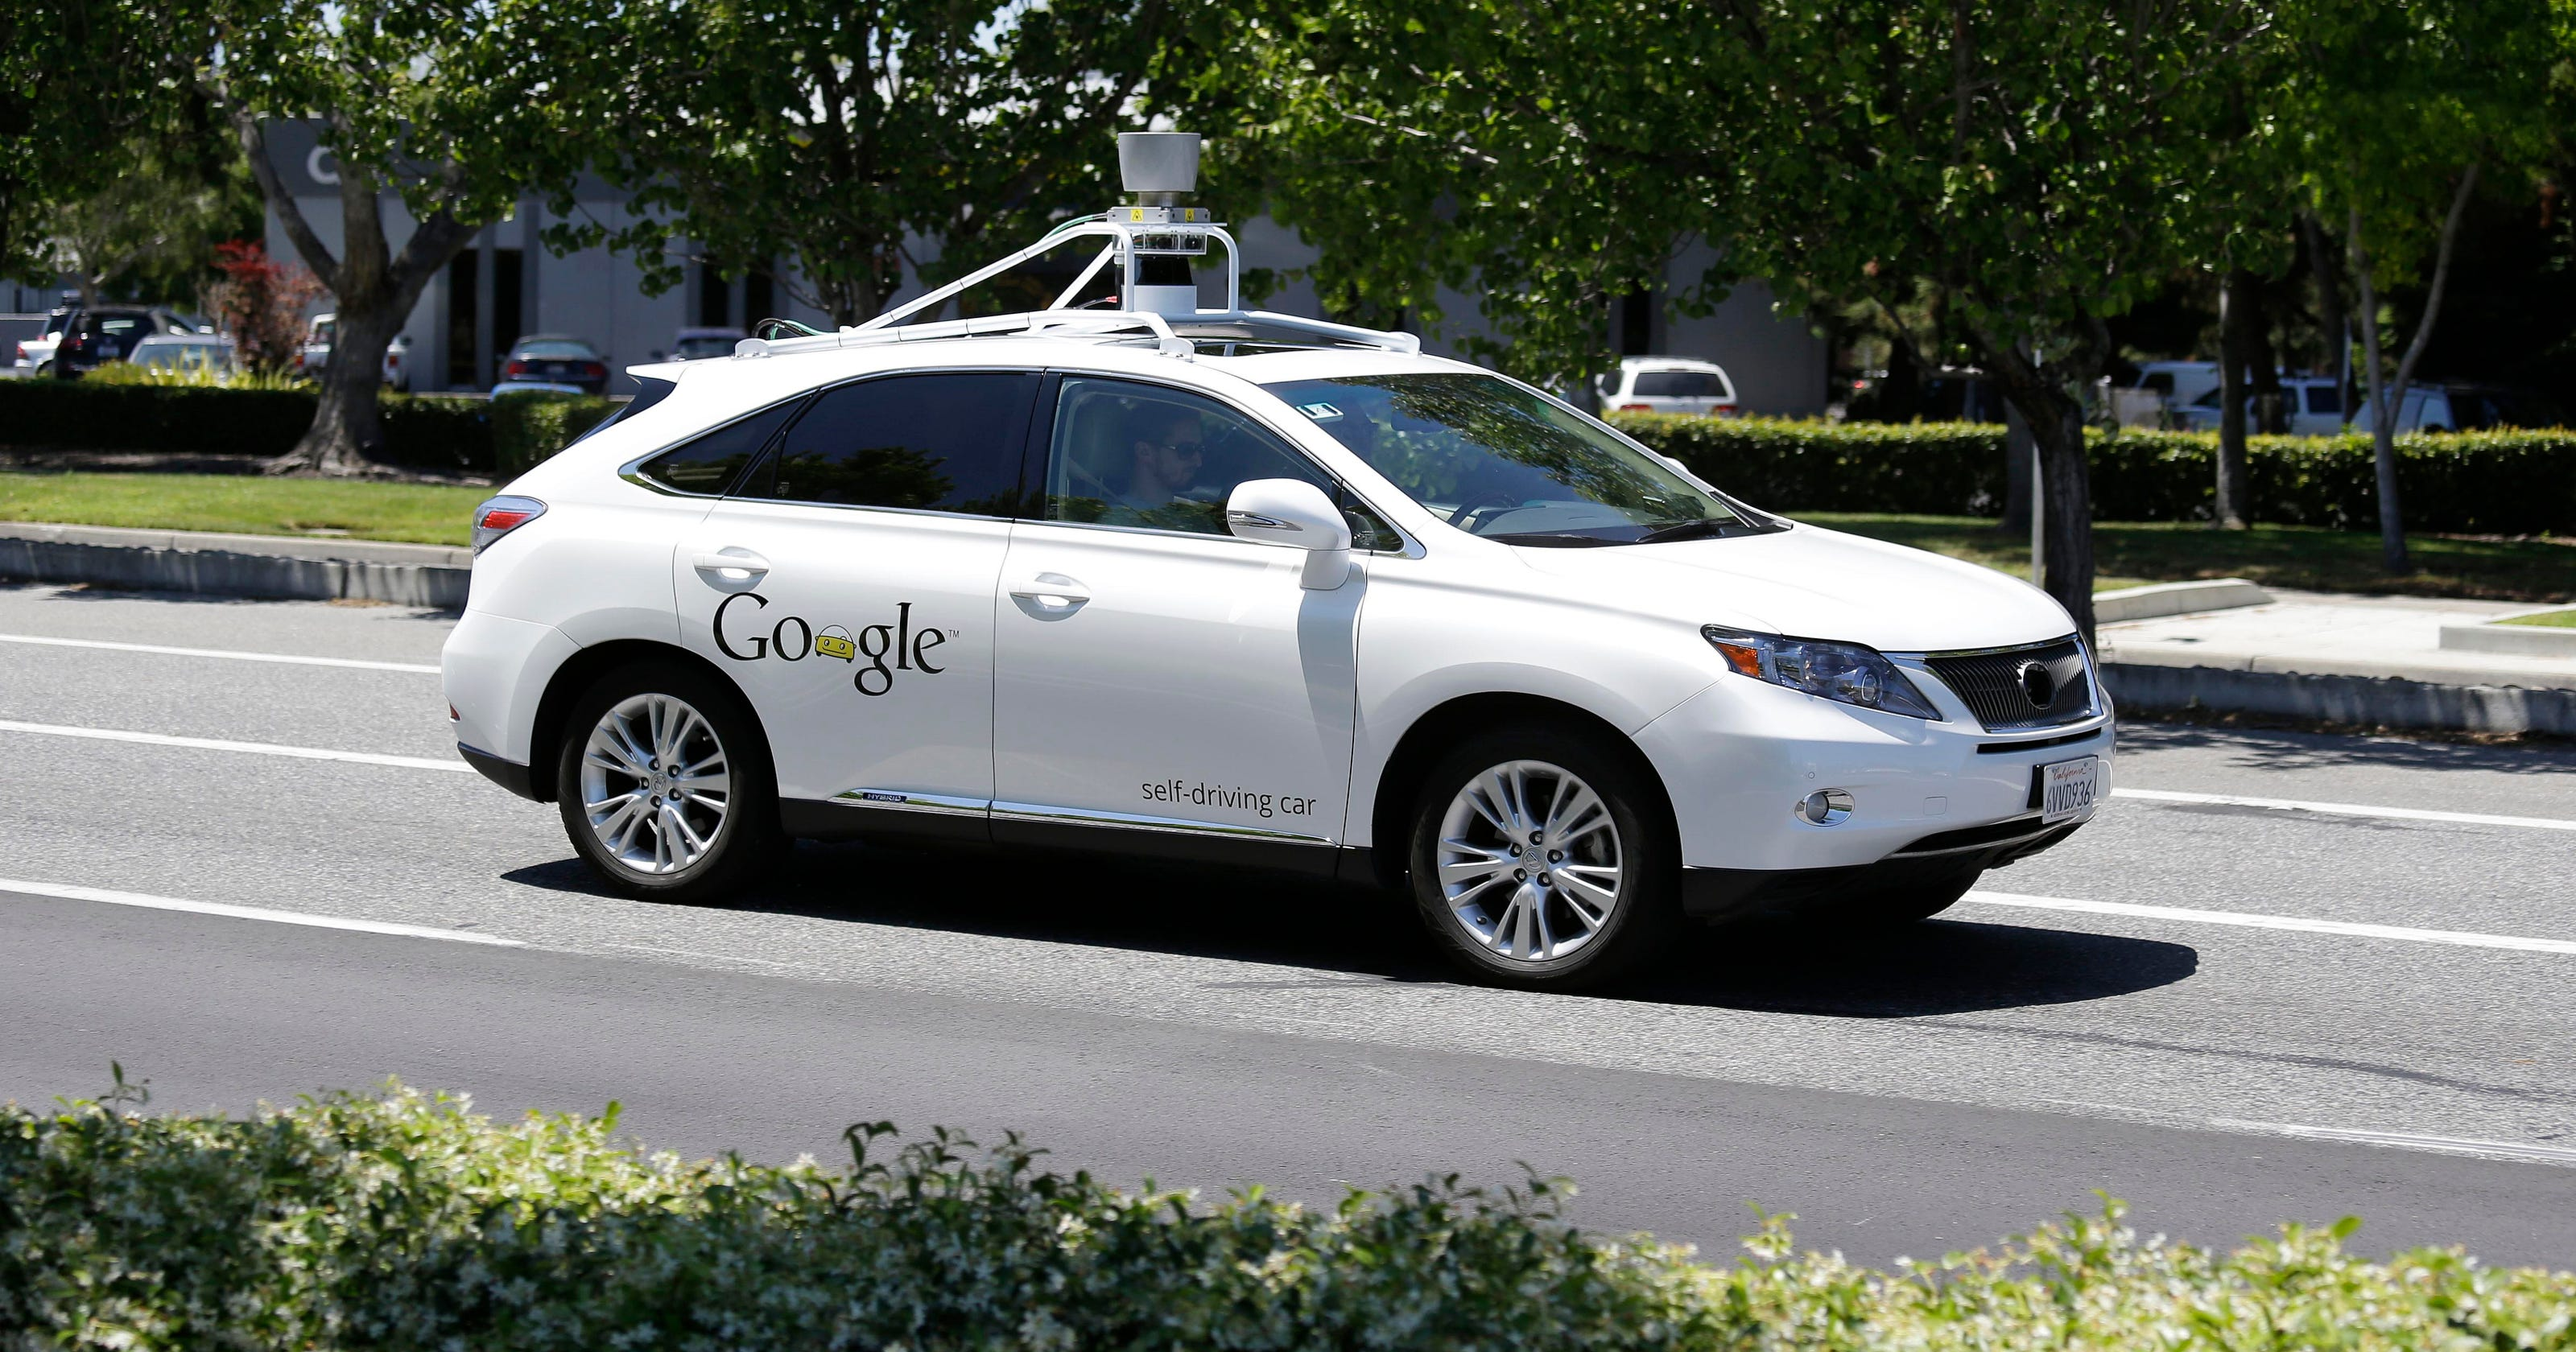 Google: No U S  OK needed for self-driving test cars